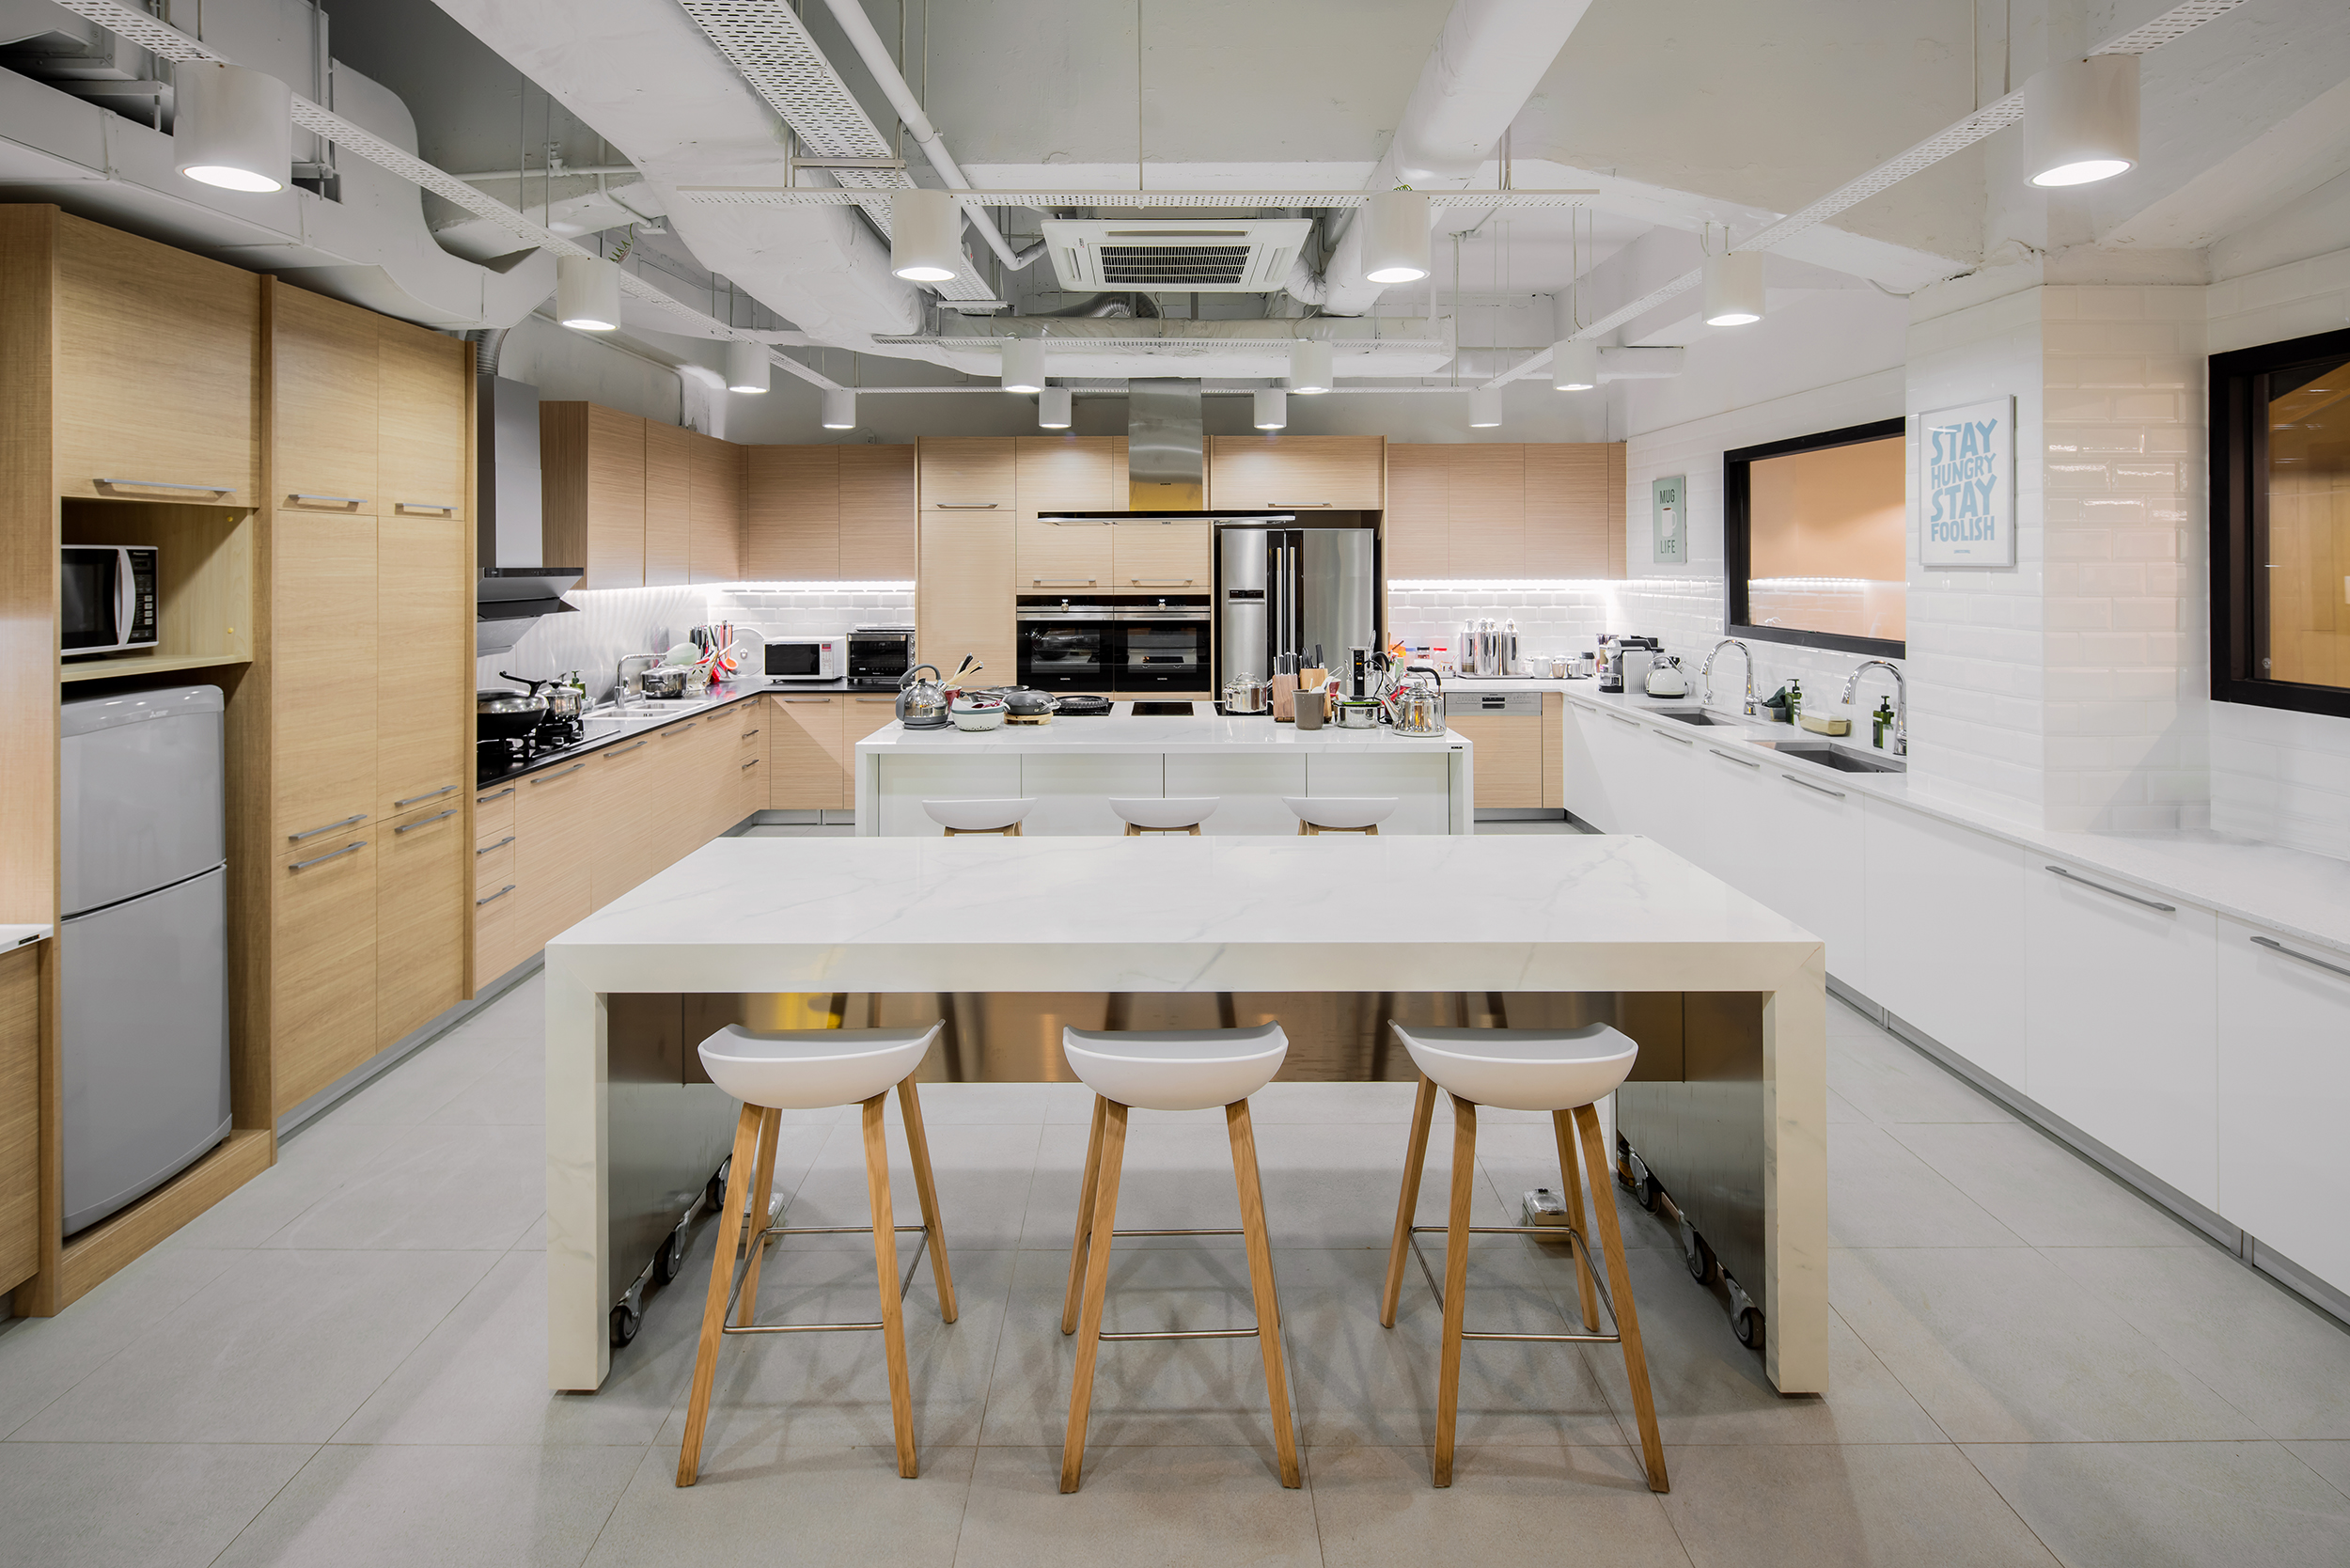 Global kitchen featuring Western, Chinese and Japanese kitchen layouts to facilitate product development and testing procedures. Cooking demonstrations and classes could also be held here.